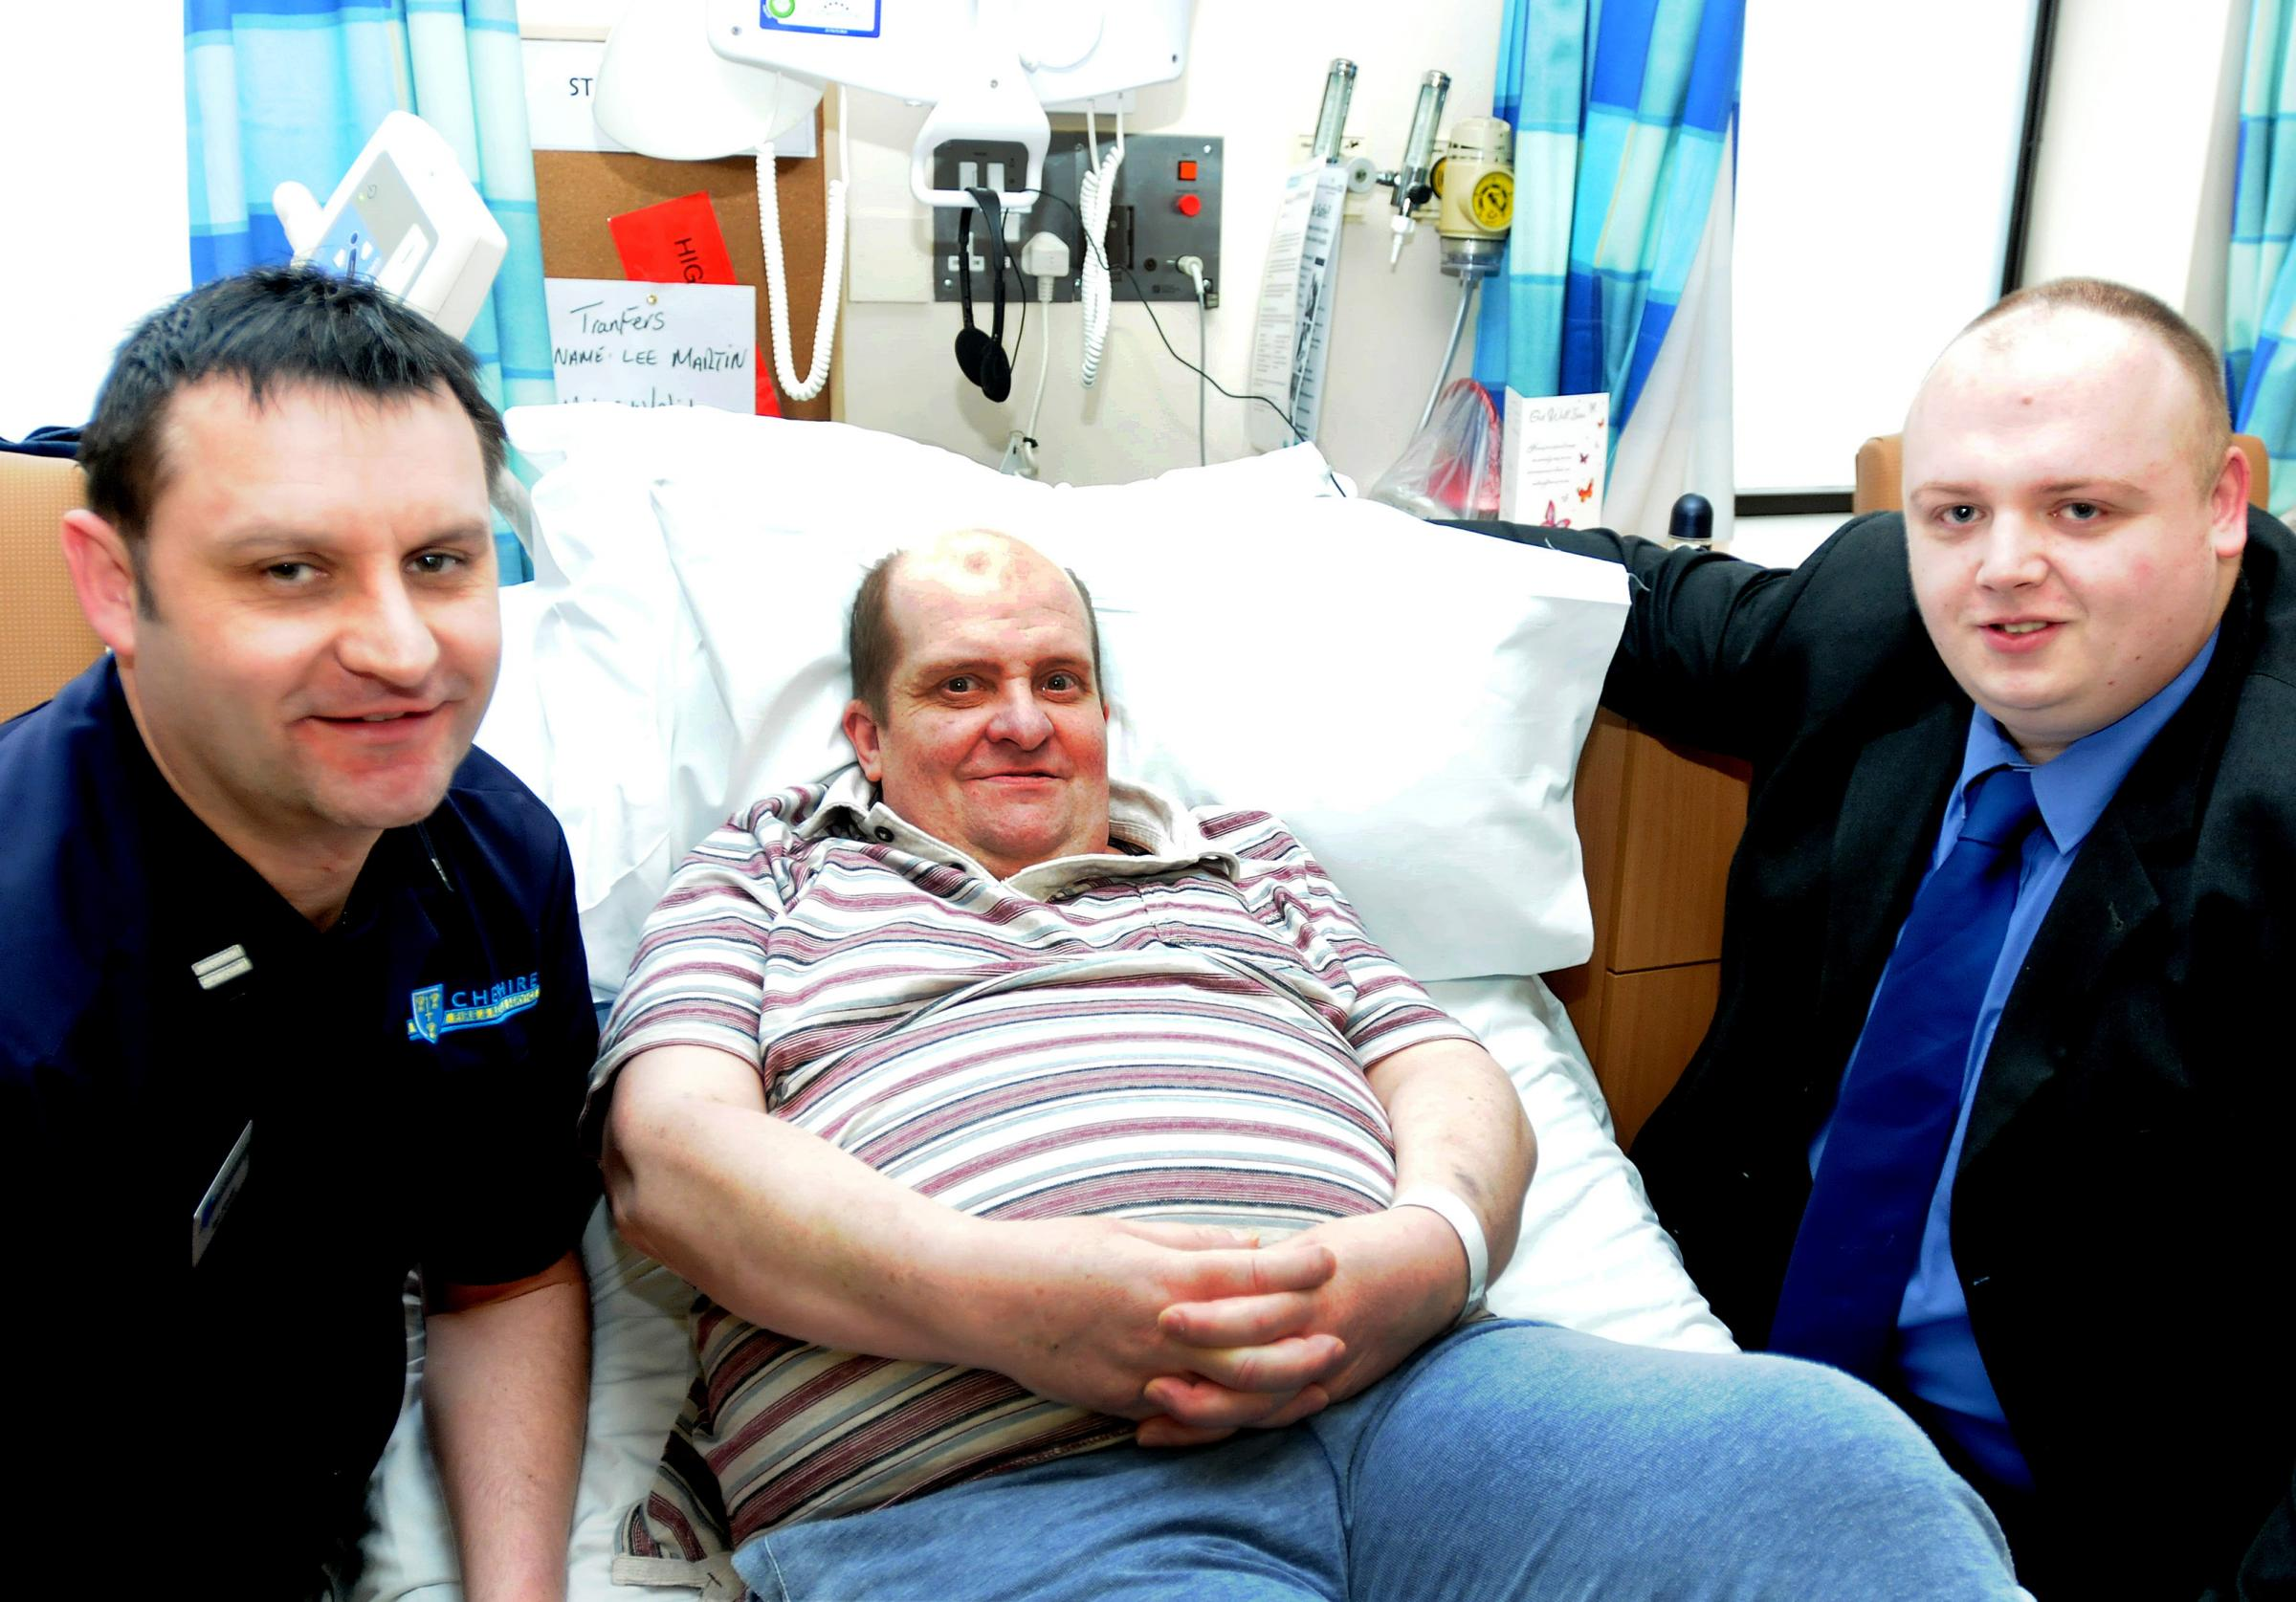 Heroes helped man who suffered heart attack in Golden Square